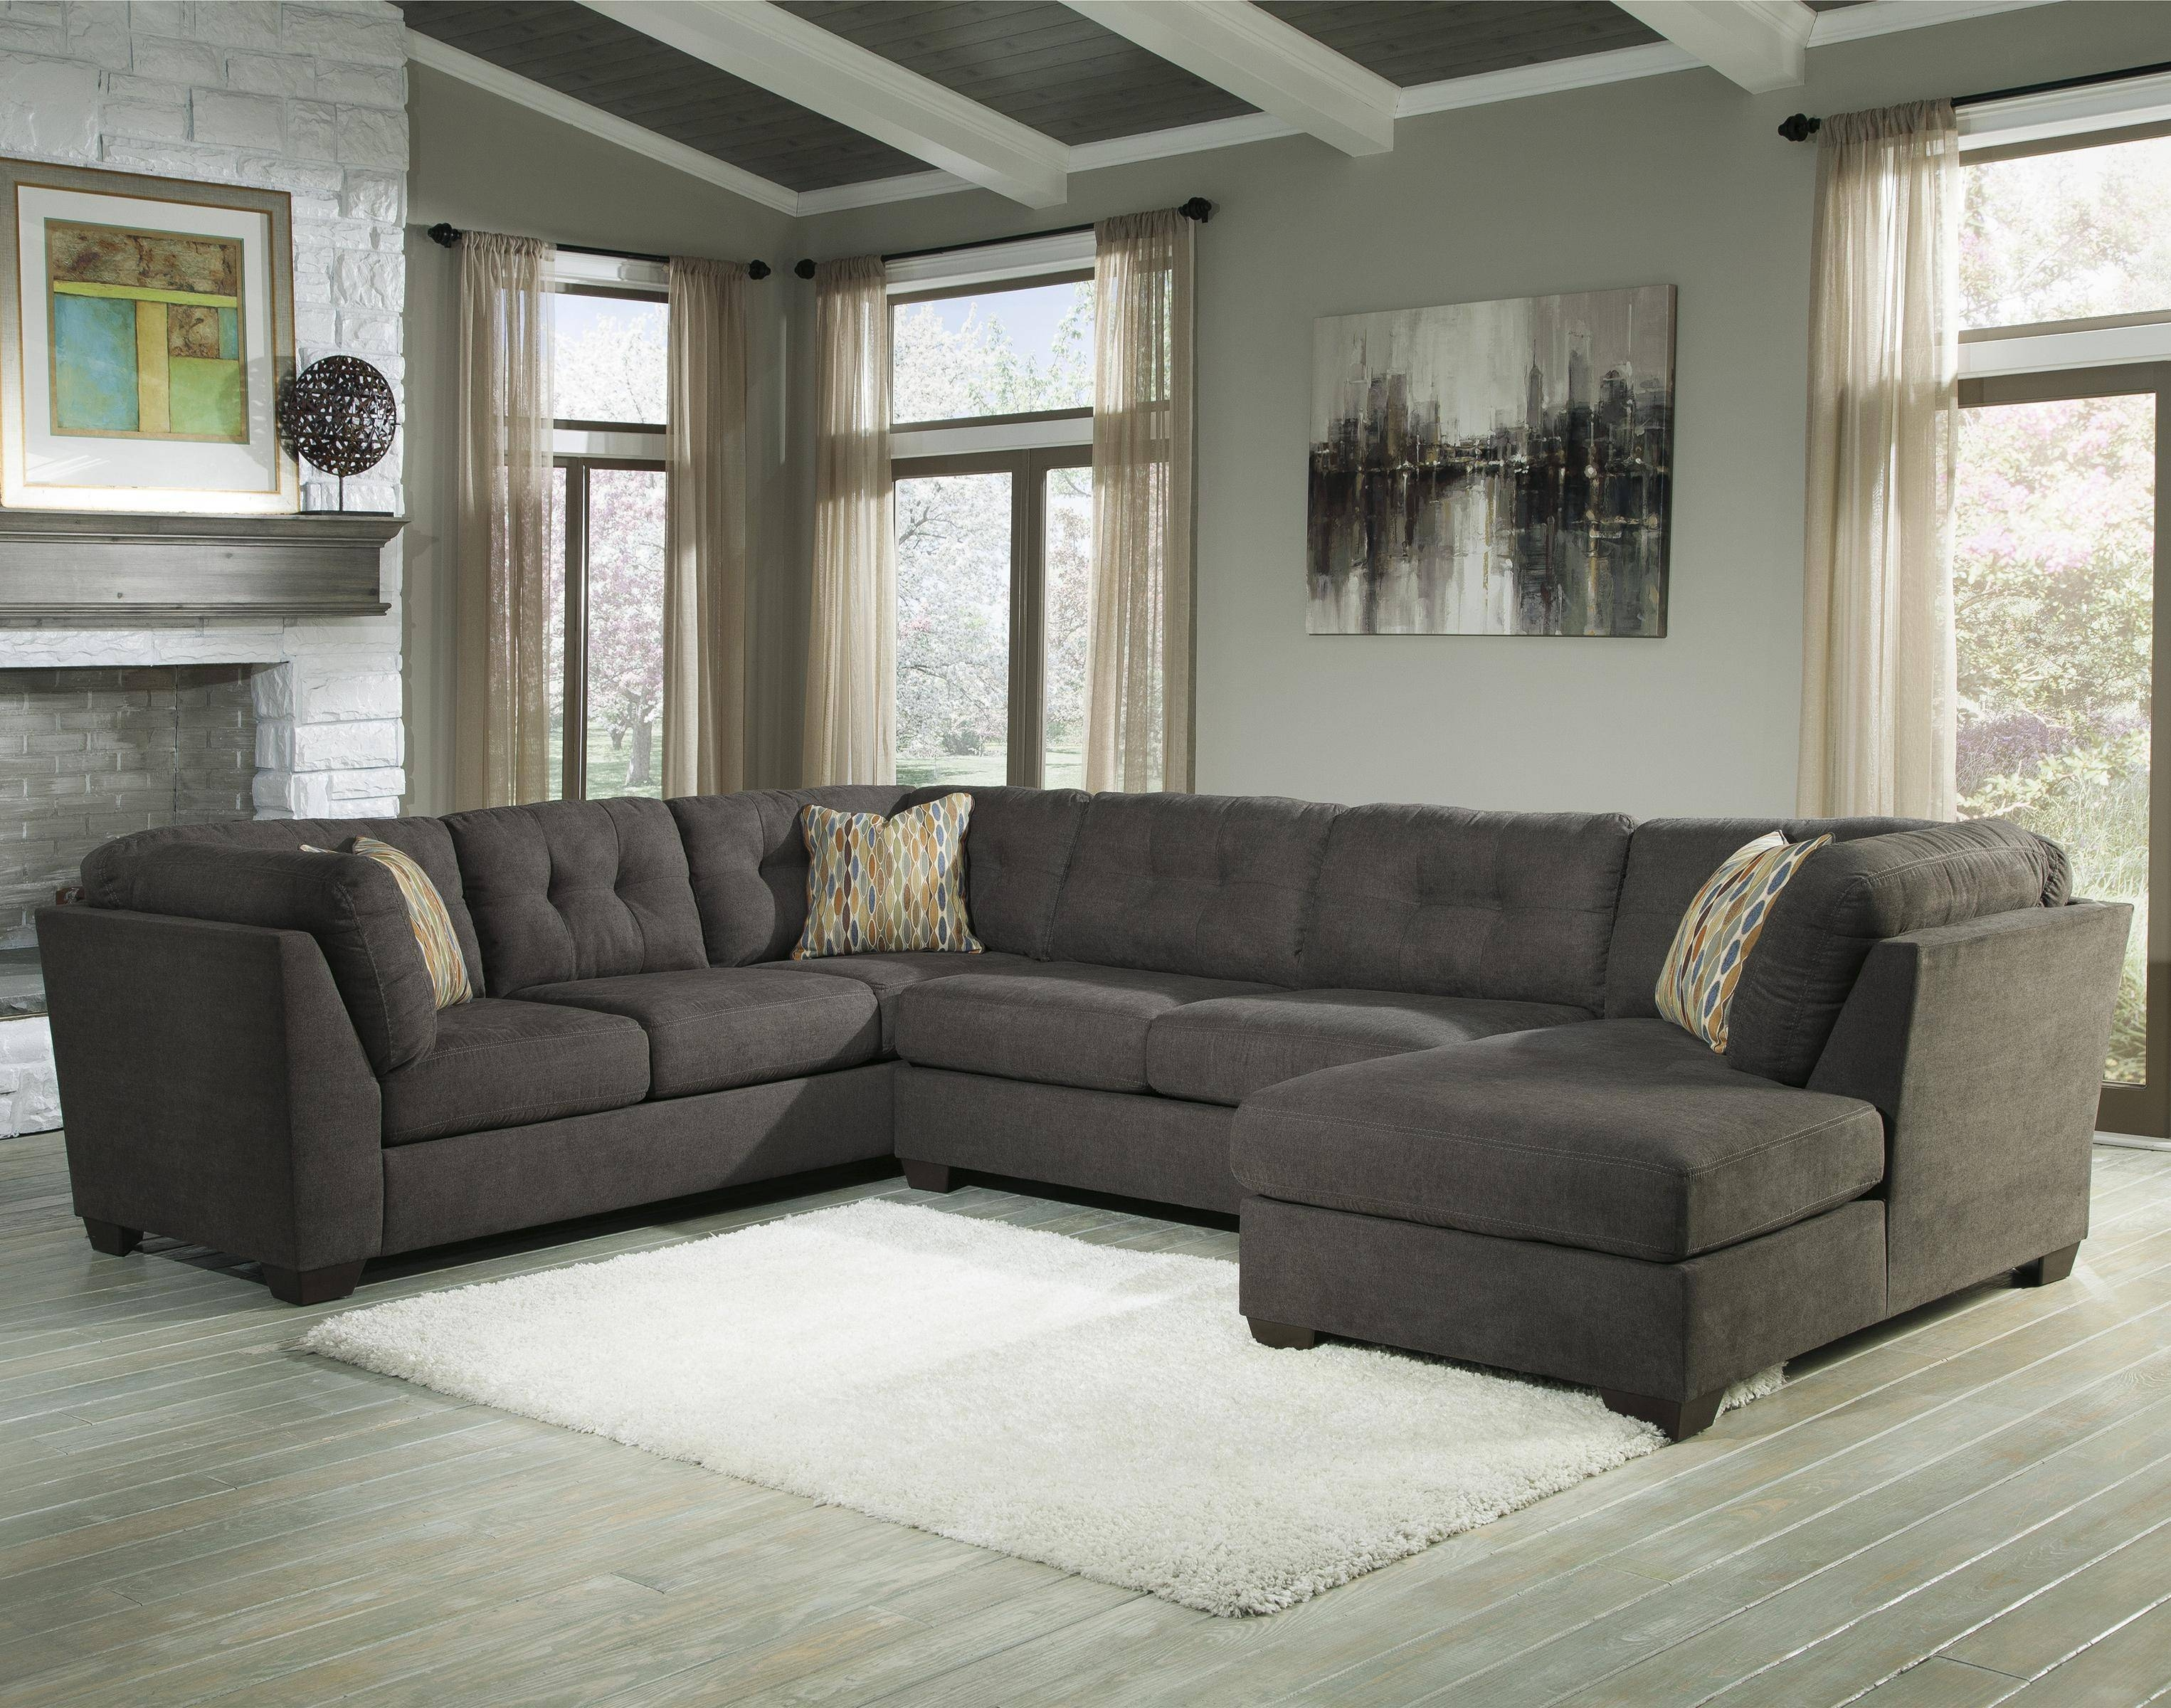 Benchcraft Delta City - Steel 3-Piece Modular Sectional With Right with Individual Piece Sectional Sofas (Image 5 of 25)